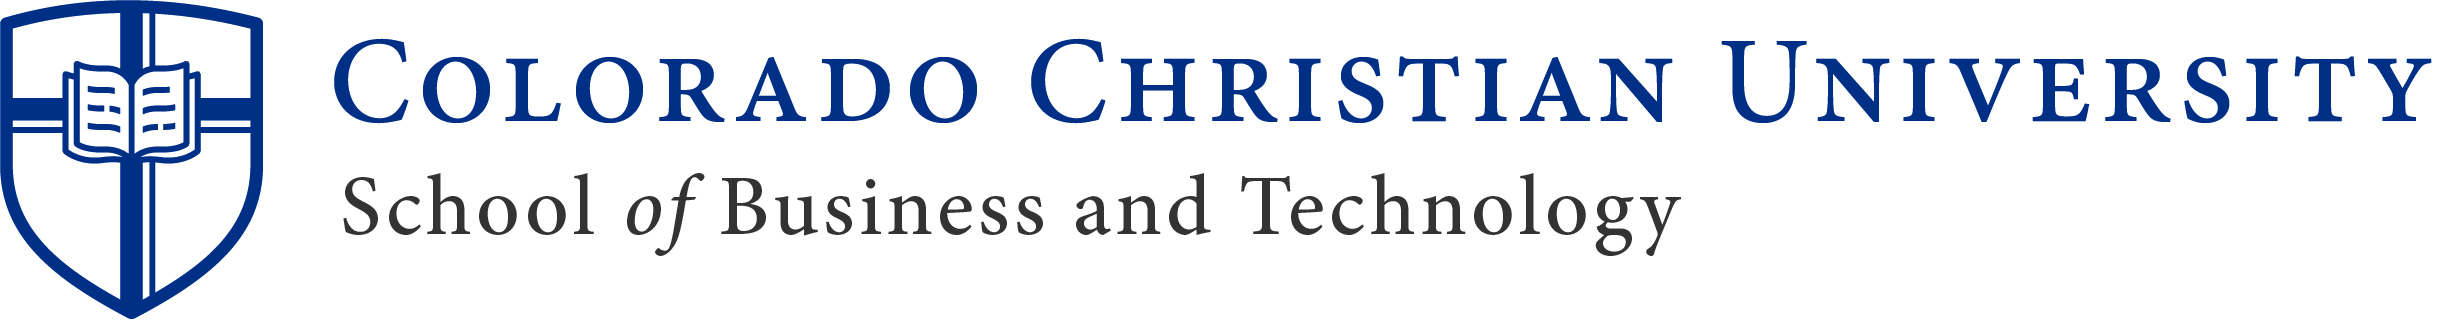 CAGS School of Business and Technology Logo